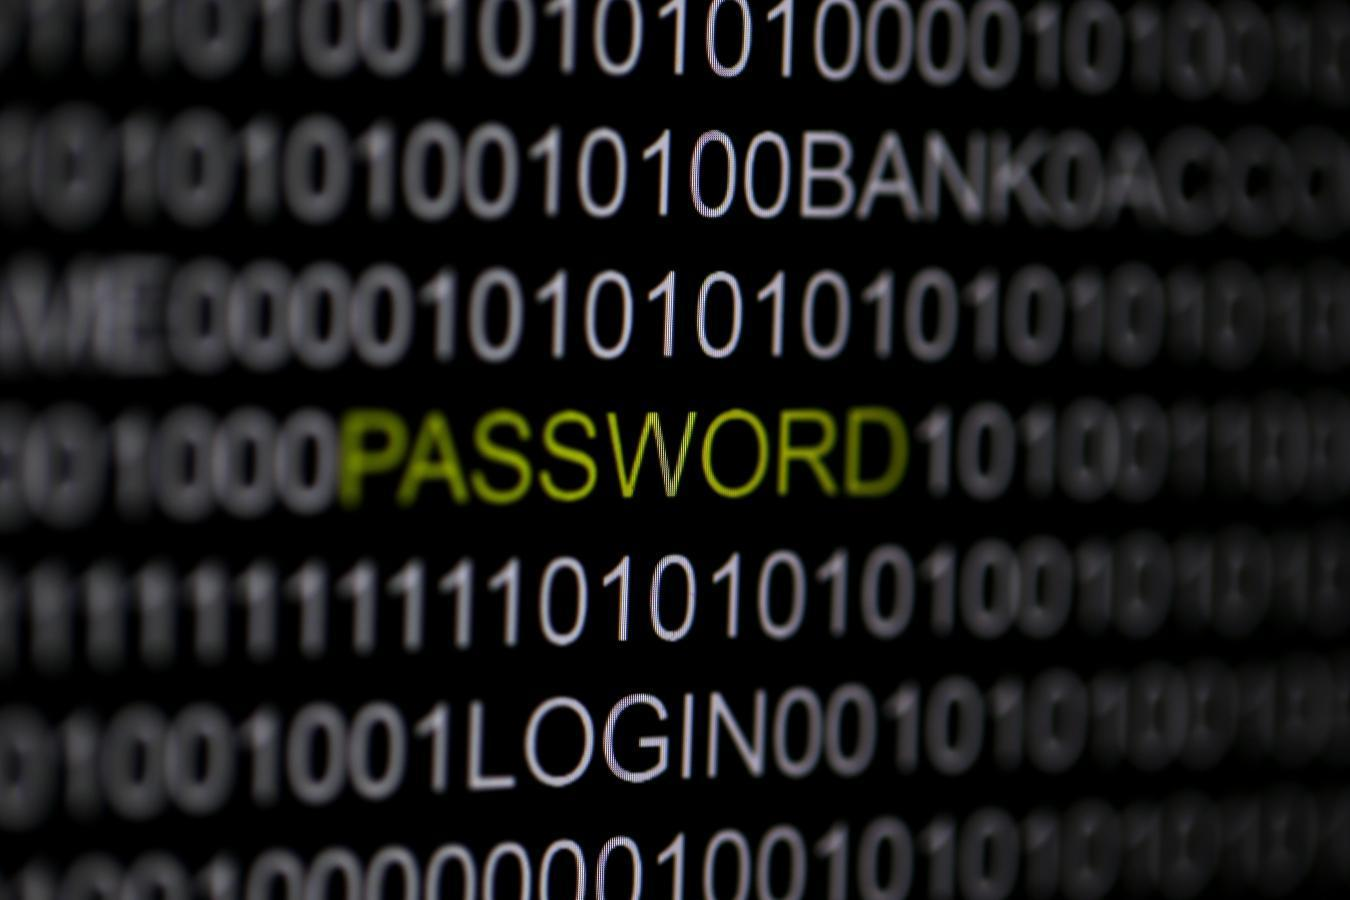 Russia hacked hundreds of Western, Asian companies: security firm